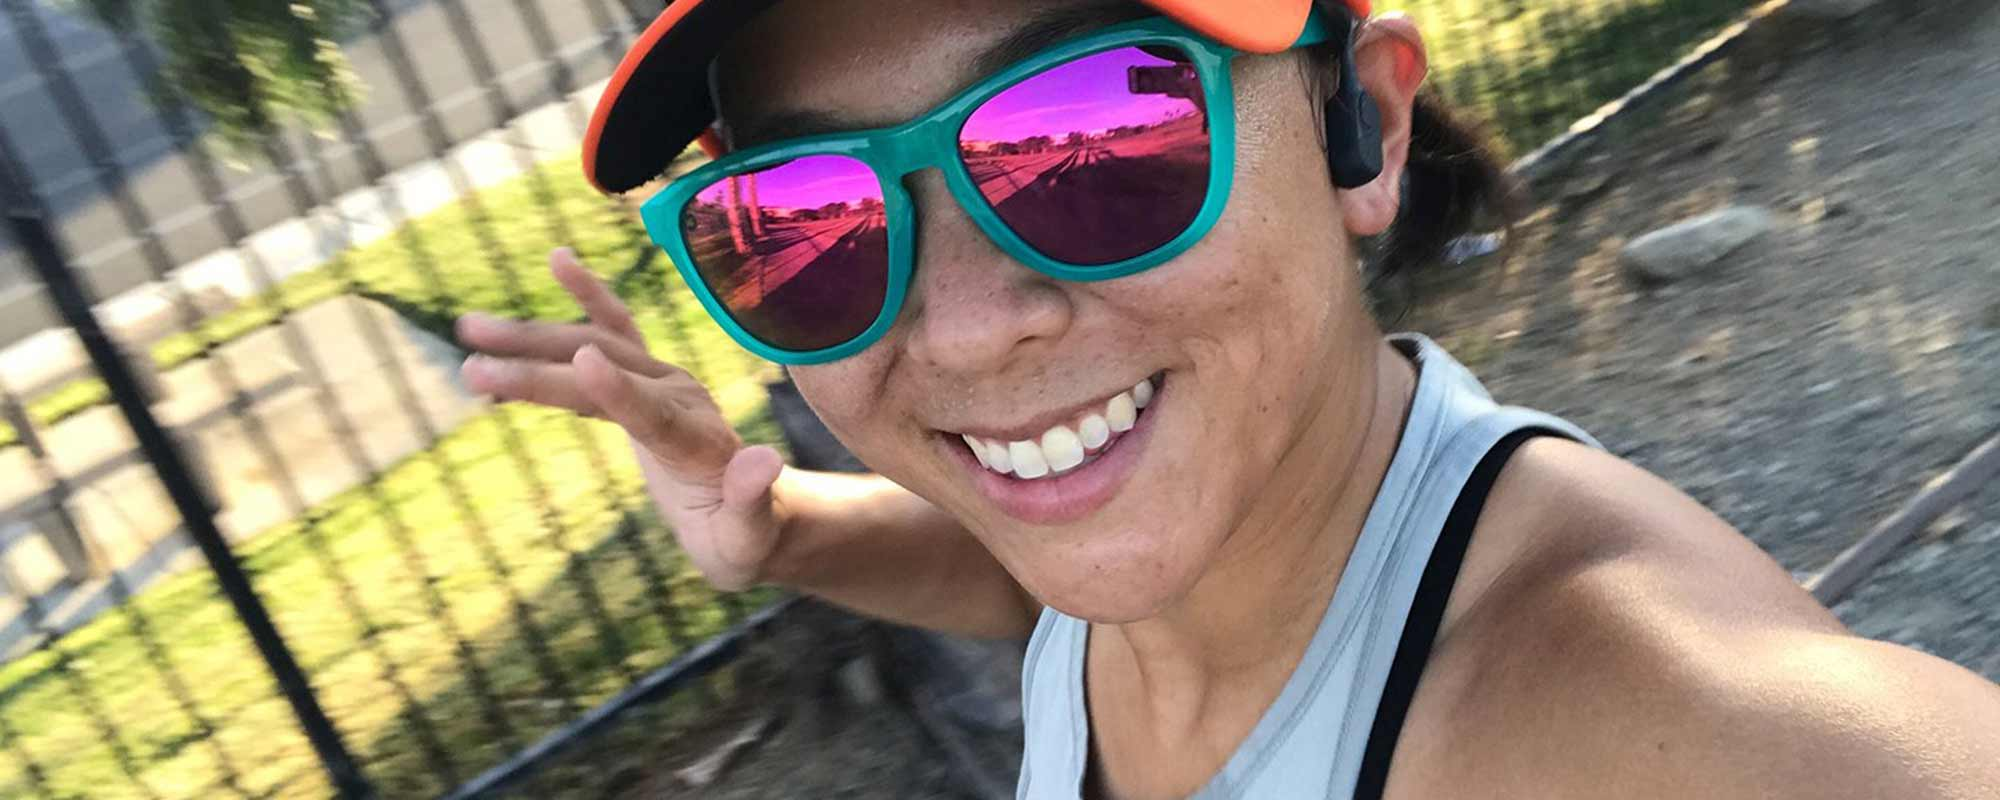 How ShokzStar Mai Managed Plantar Fasciitis and Adjusted Her Goals